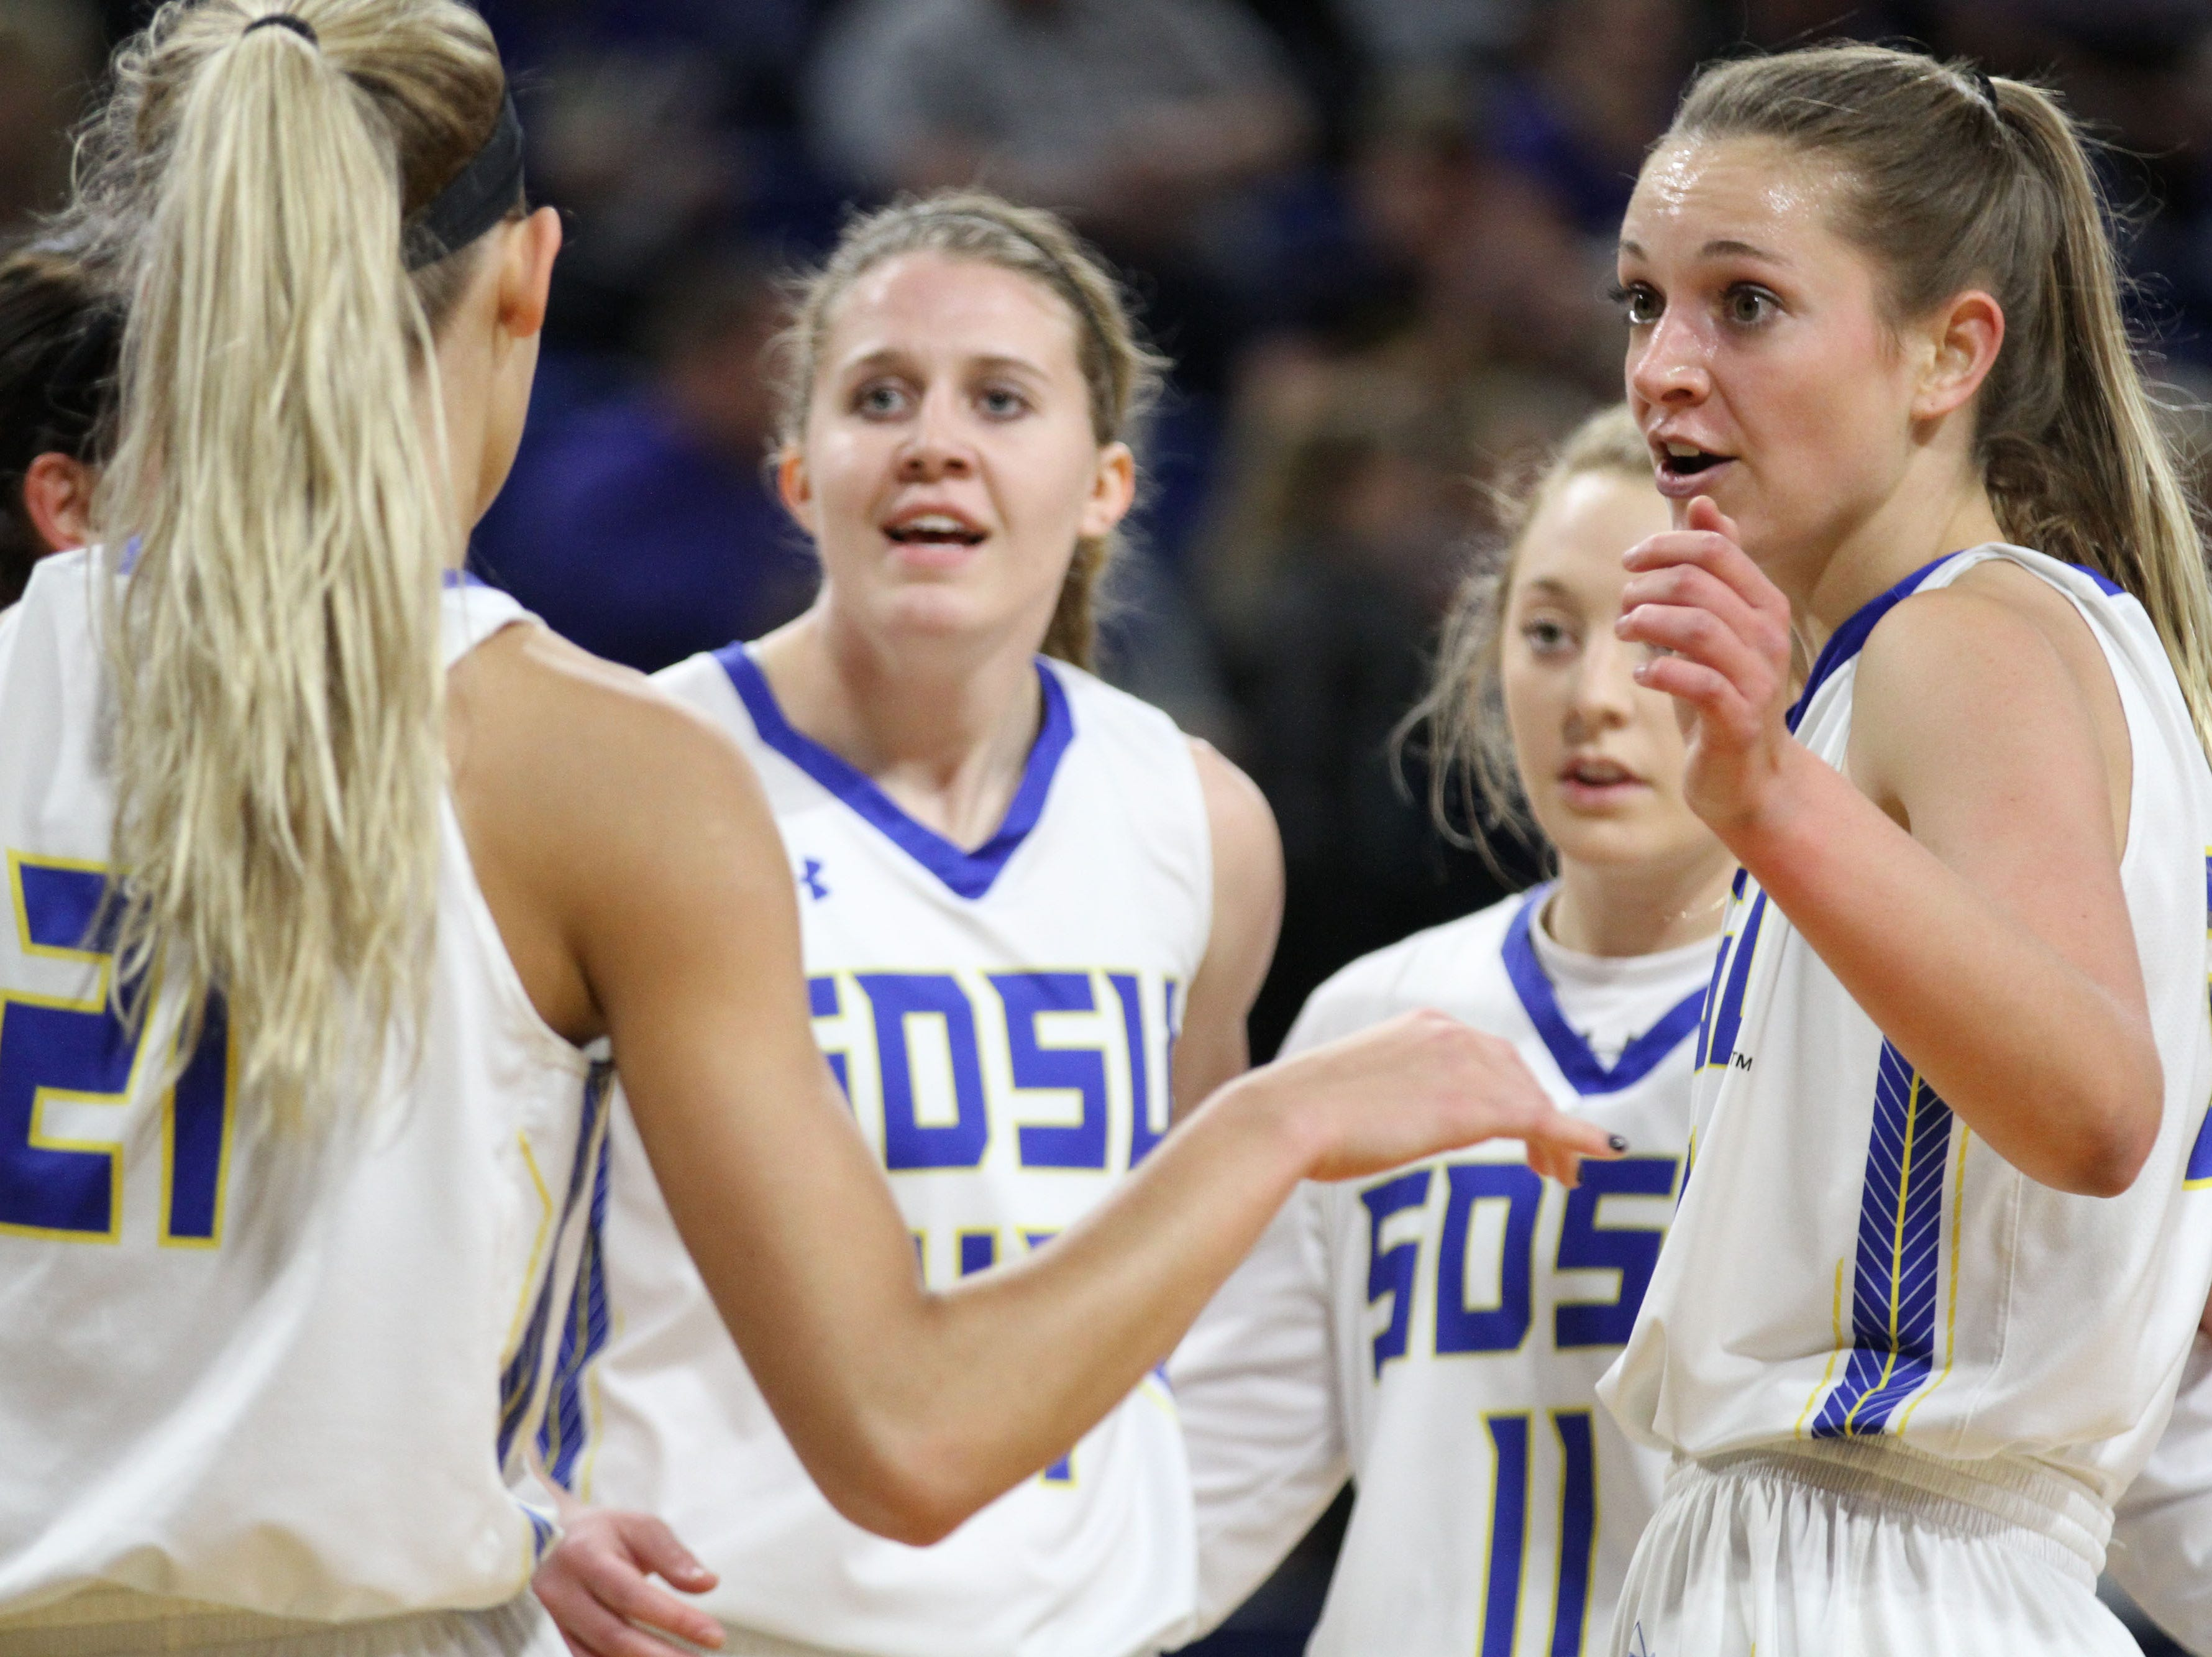 SDSU's Tagyn Larson (right) talks strategy with Tylee Irwin (21) before a free throw attempt during the first quarter of the matchup against the Ducks Wednesday night at Frost Arena in Brookings.